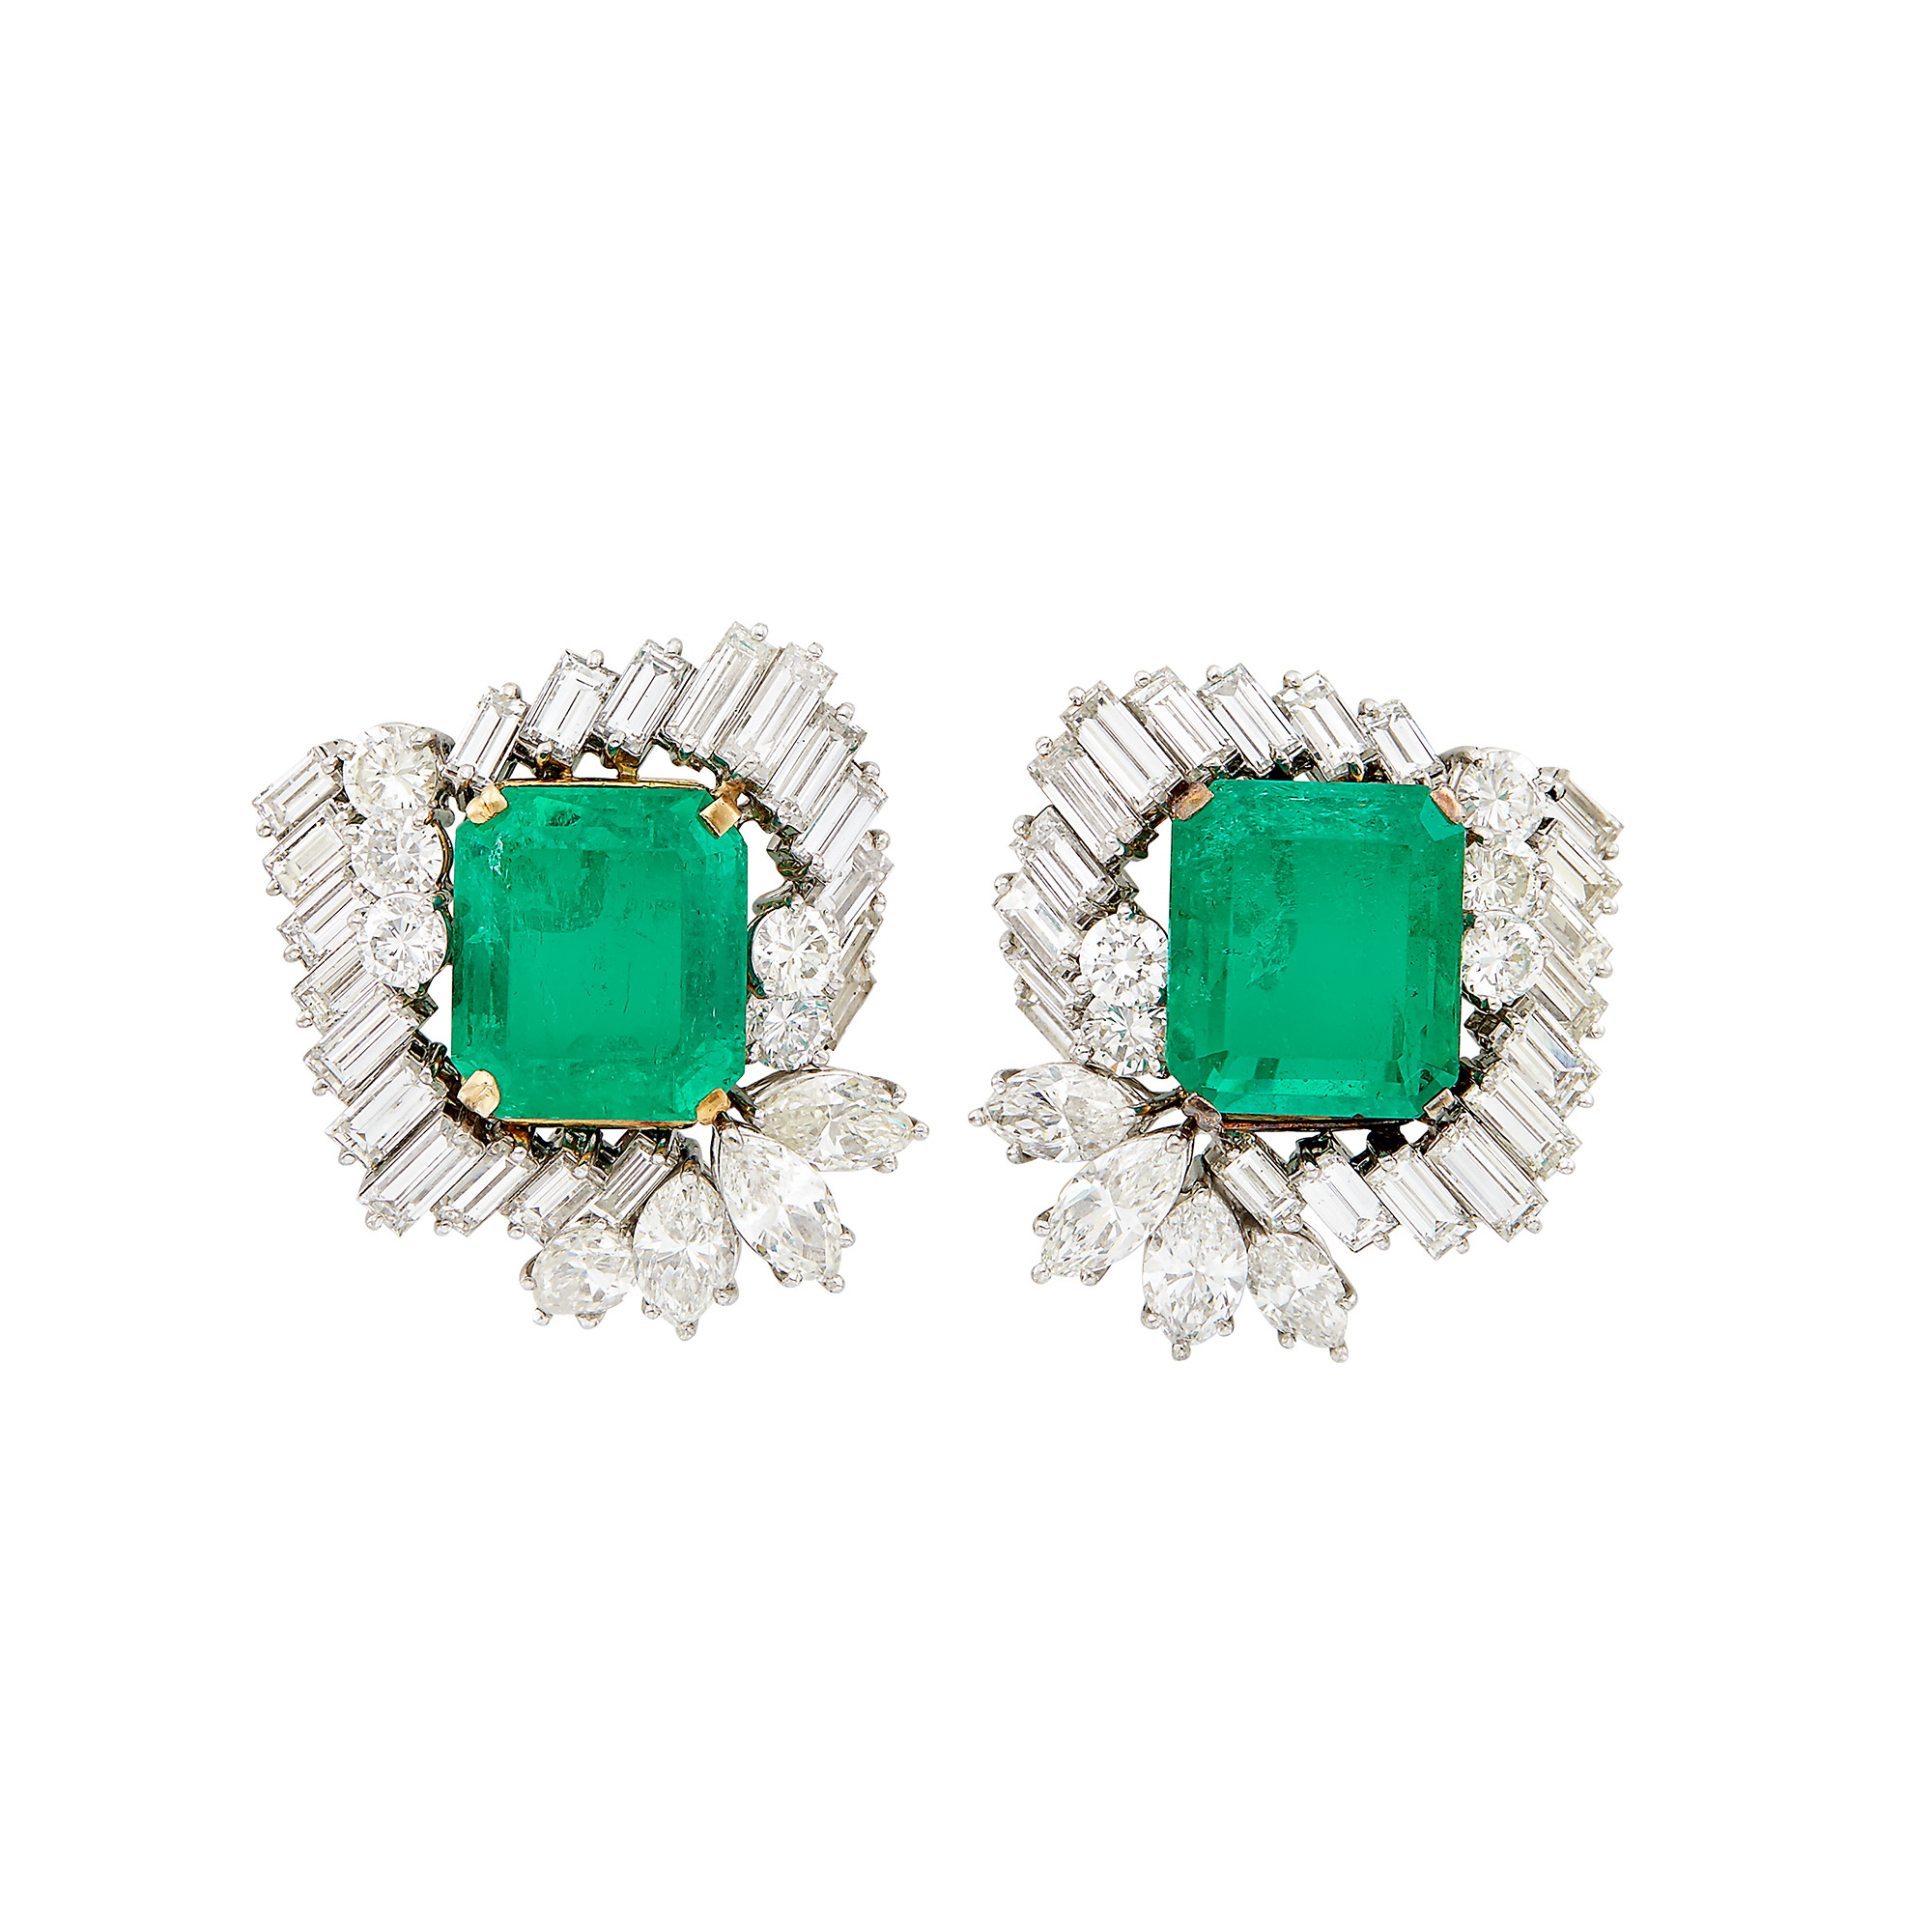 Lot image - Pair of Platinum, Gold, Emerald and Diamond Earrings